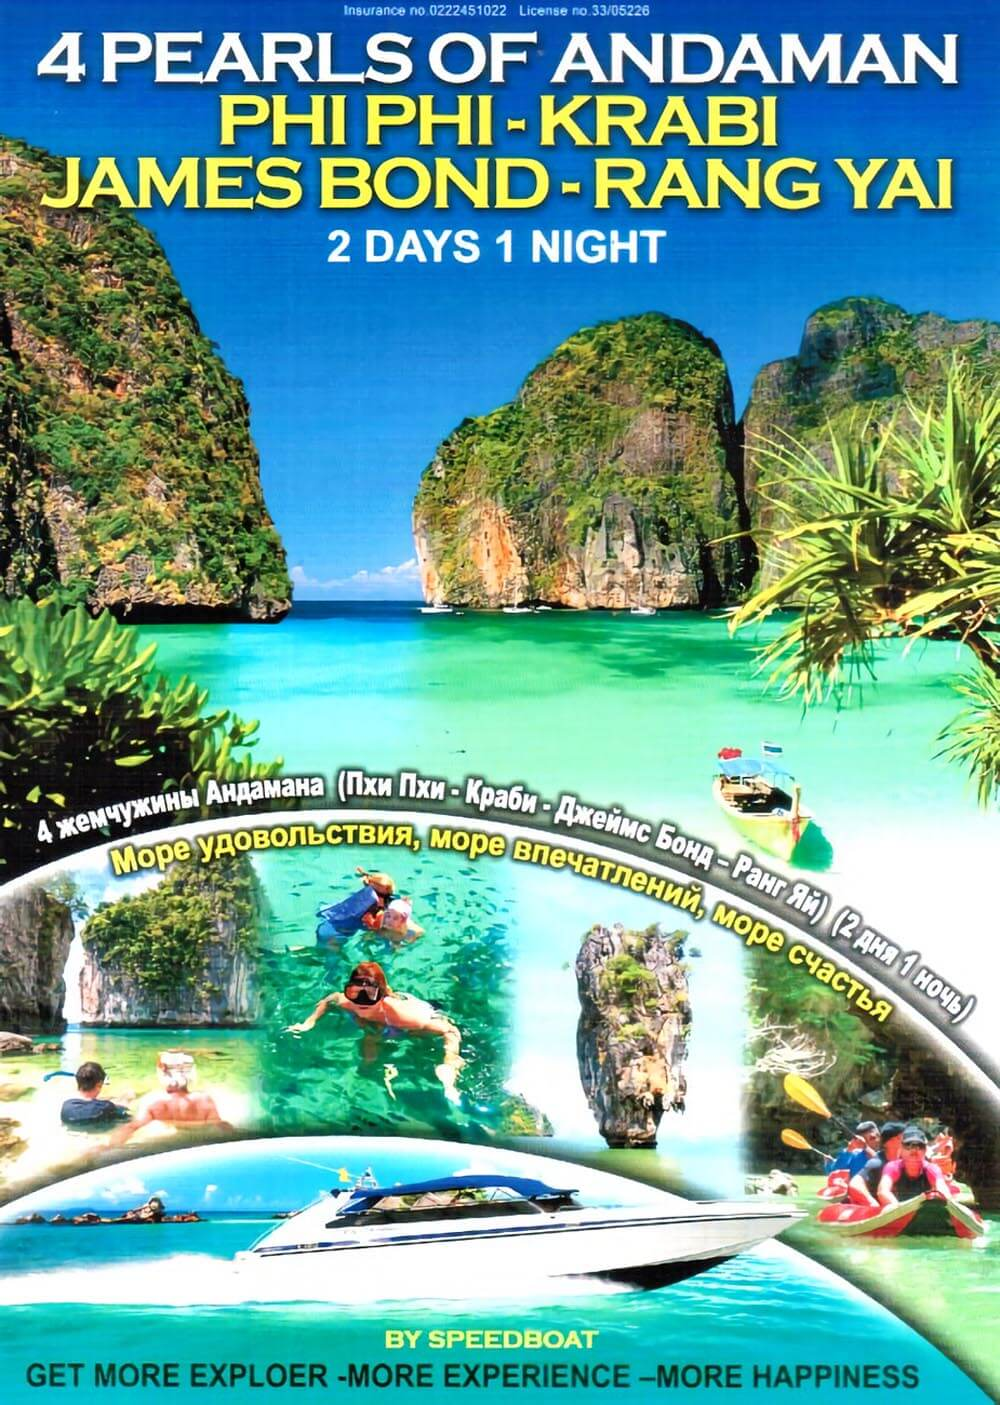 Phi Phi Islands + Krabi + James Bond + Rang Yai Tour 2 Hari 1 Malam